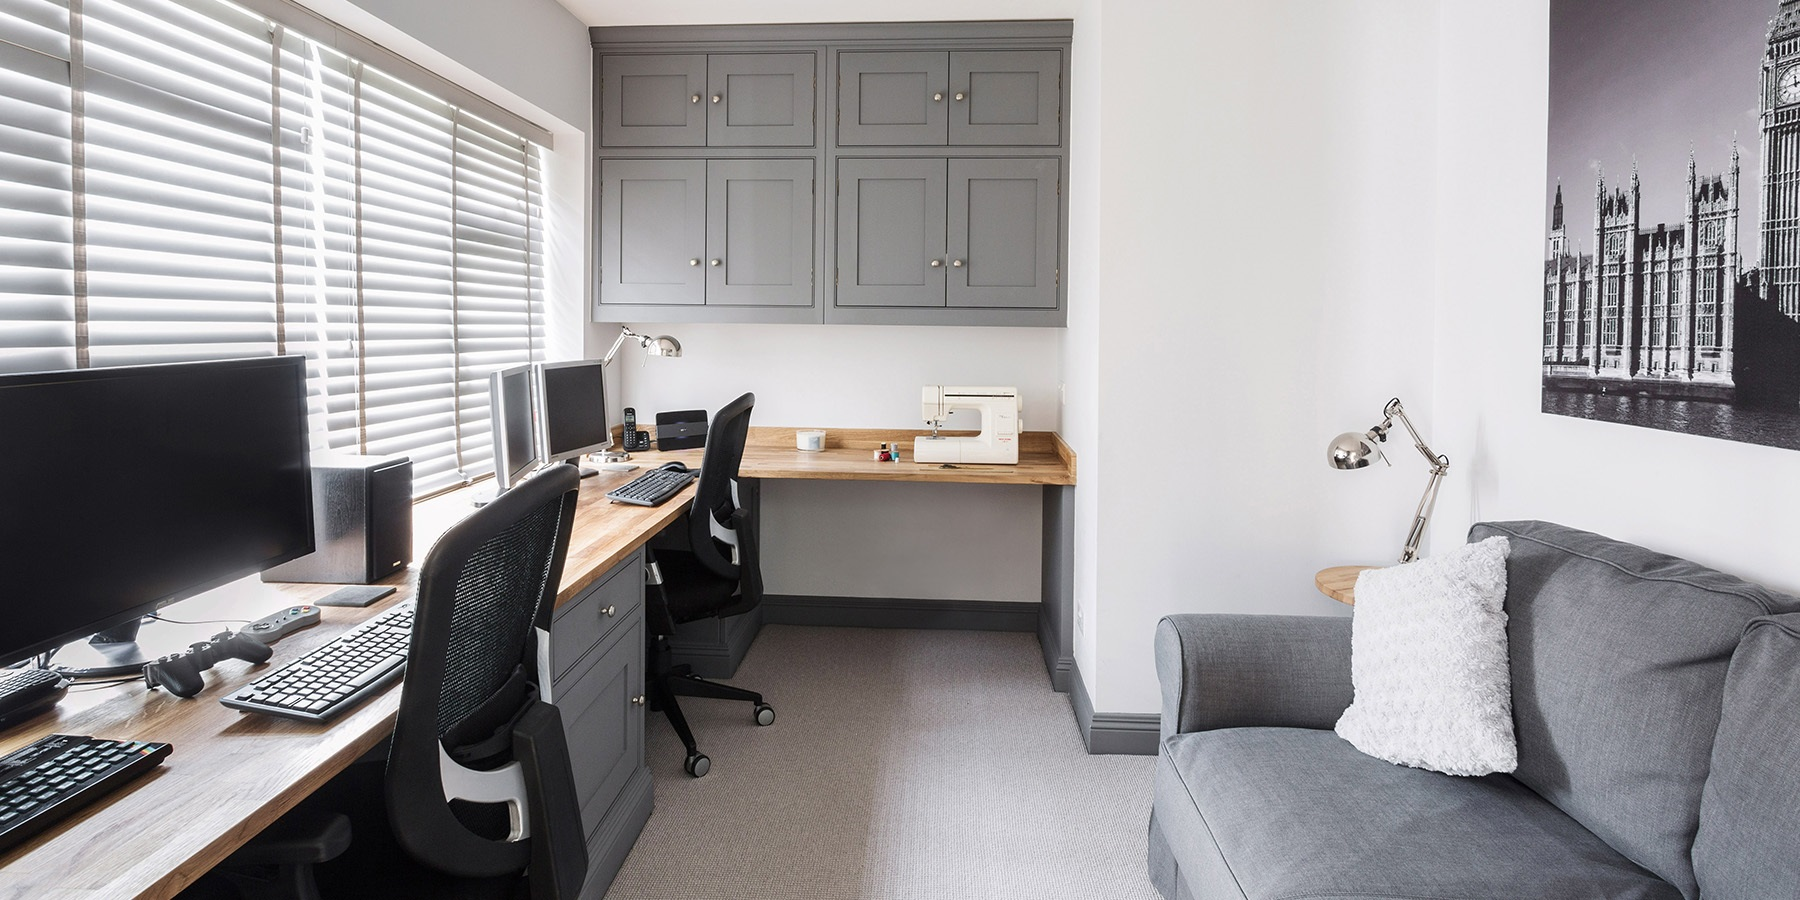 Handmade Home Office Furniture - Burlanes made-to-measure dual home office furniture, with wooden worktops.